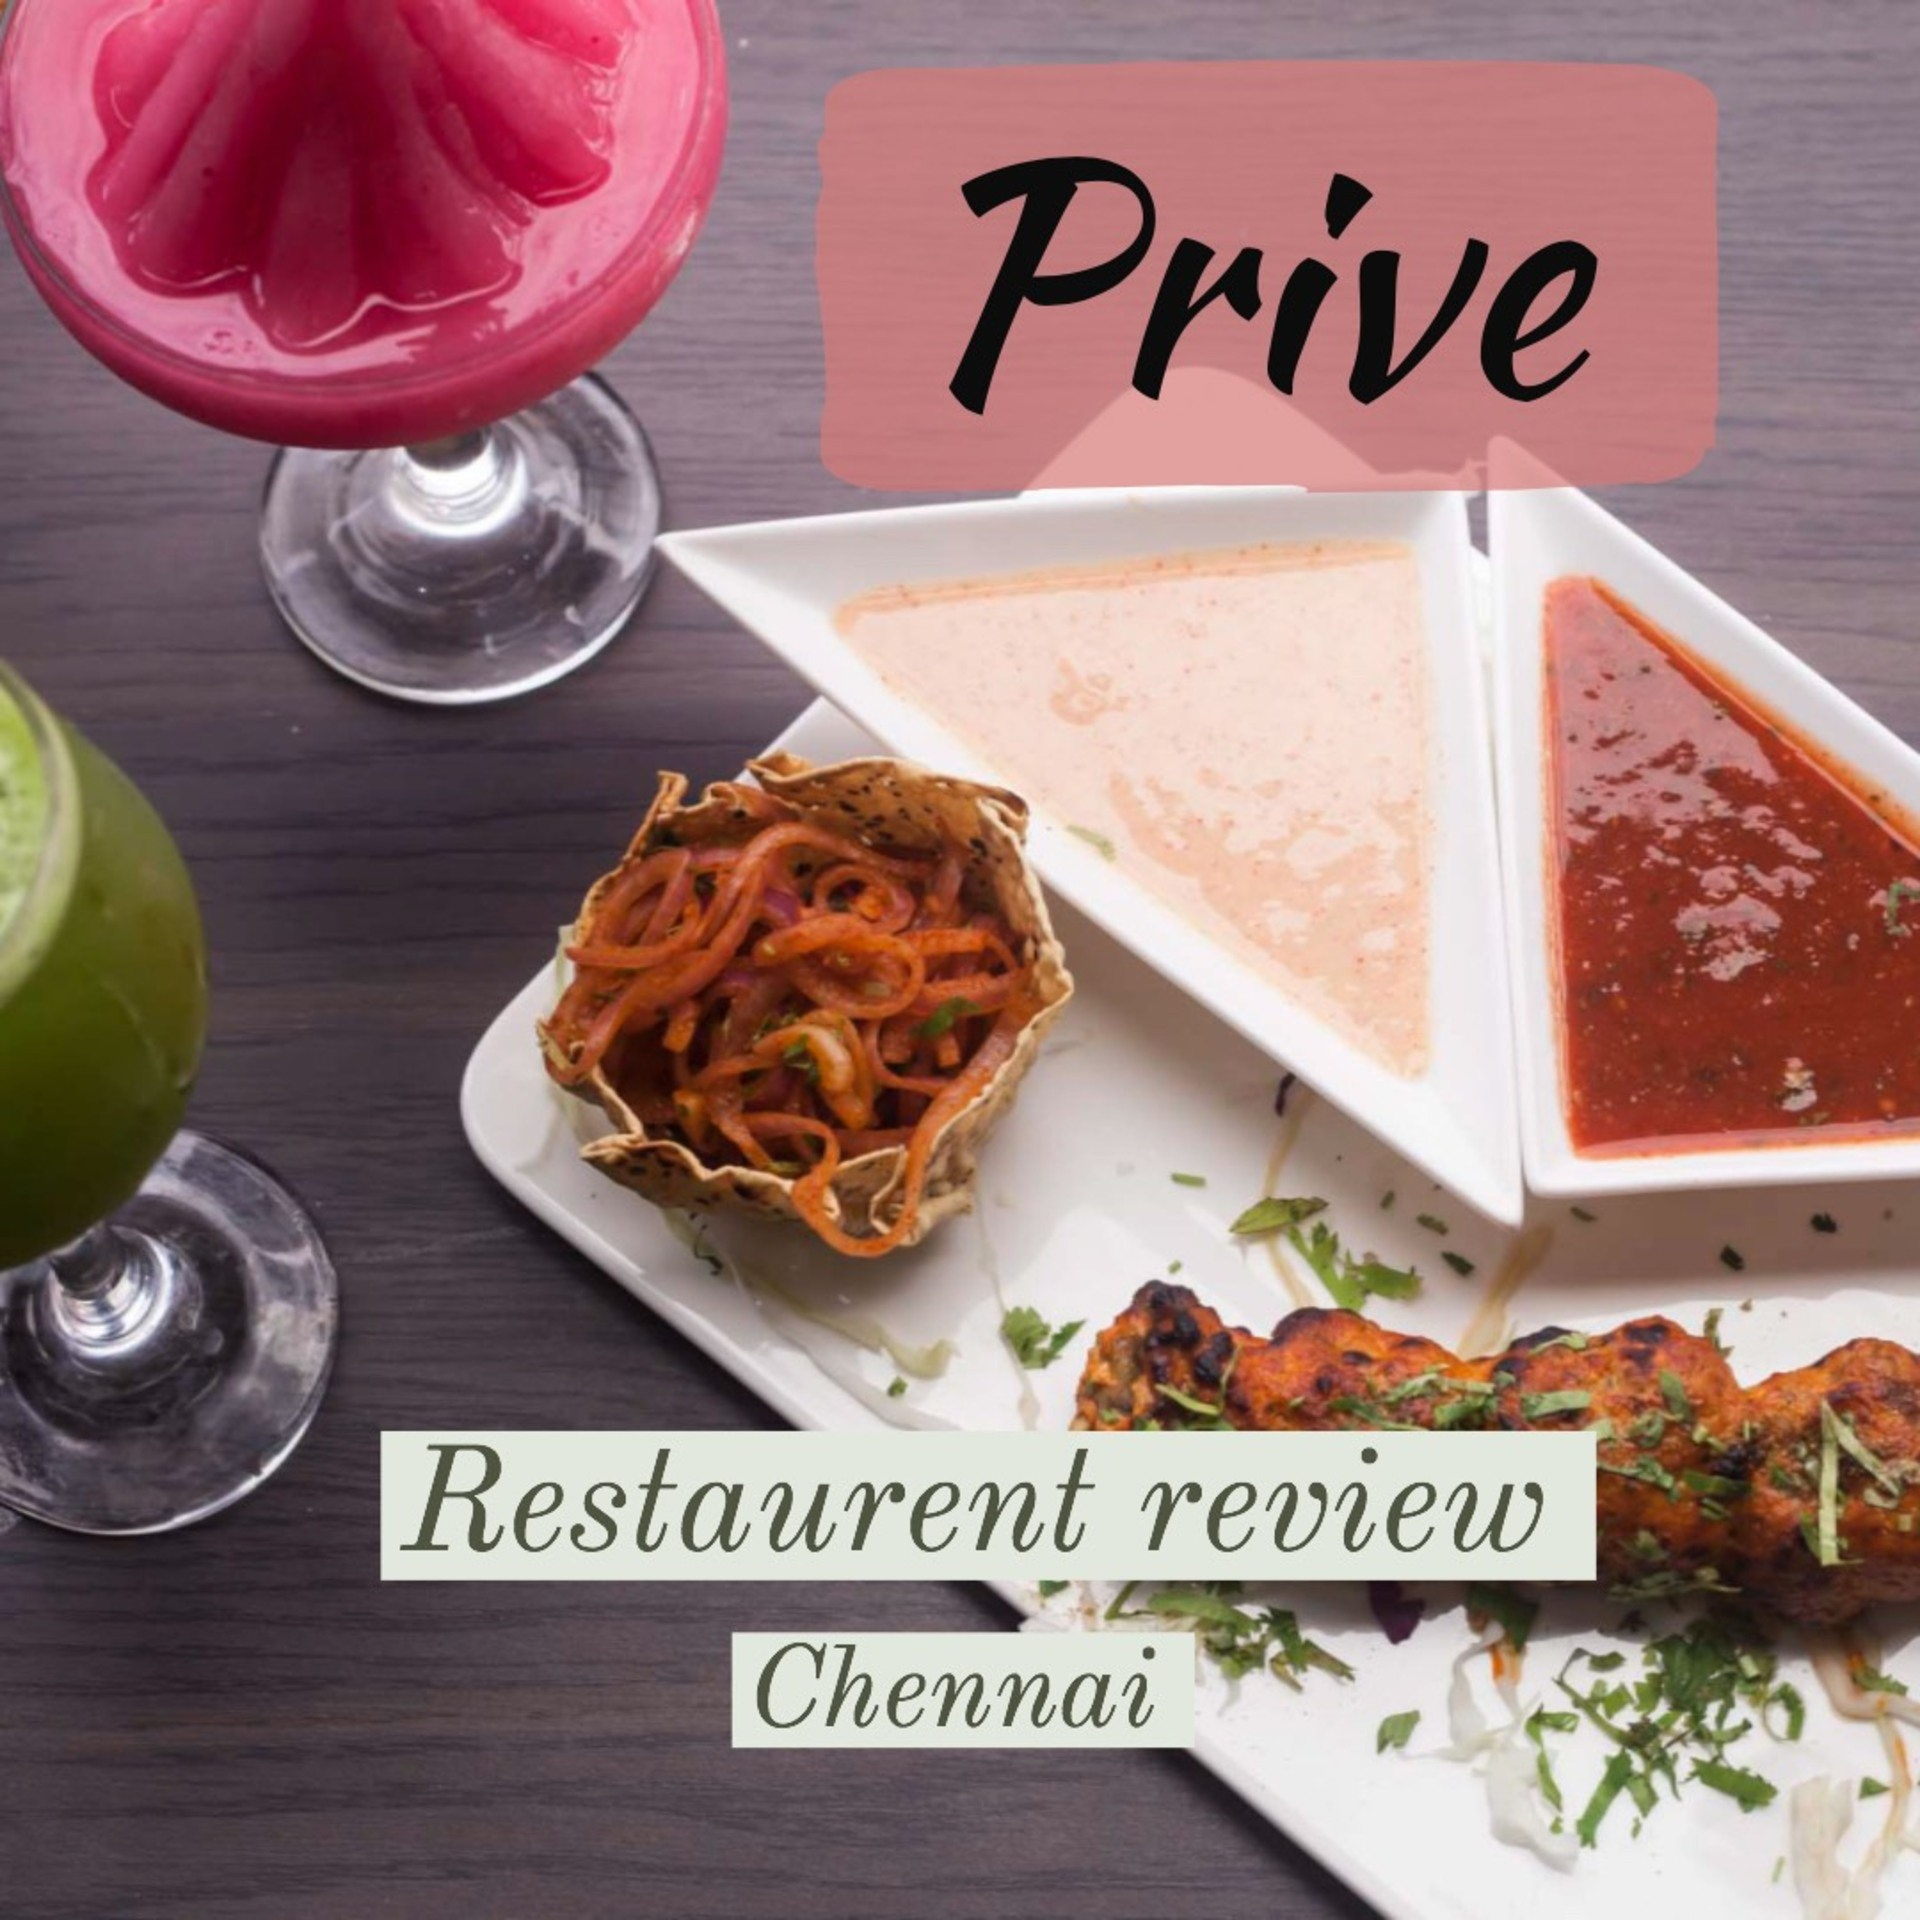 Prive : Vegetarian's Heaven in chennai  image